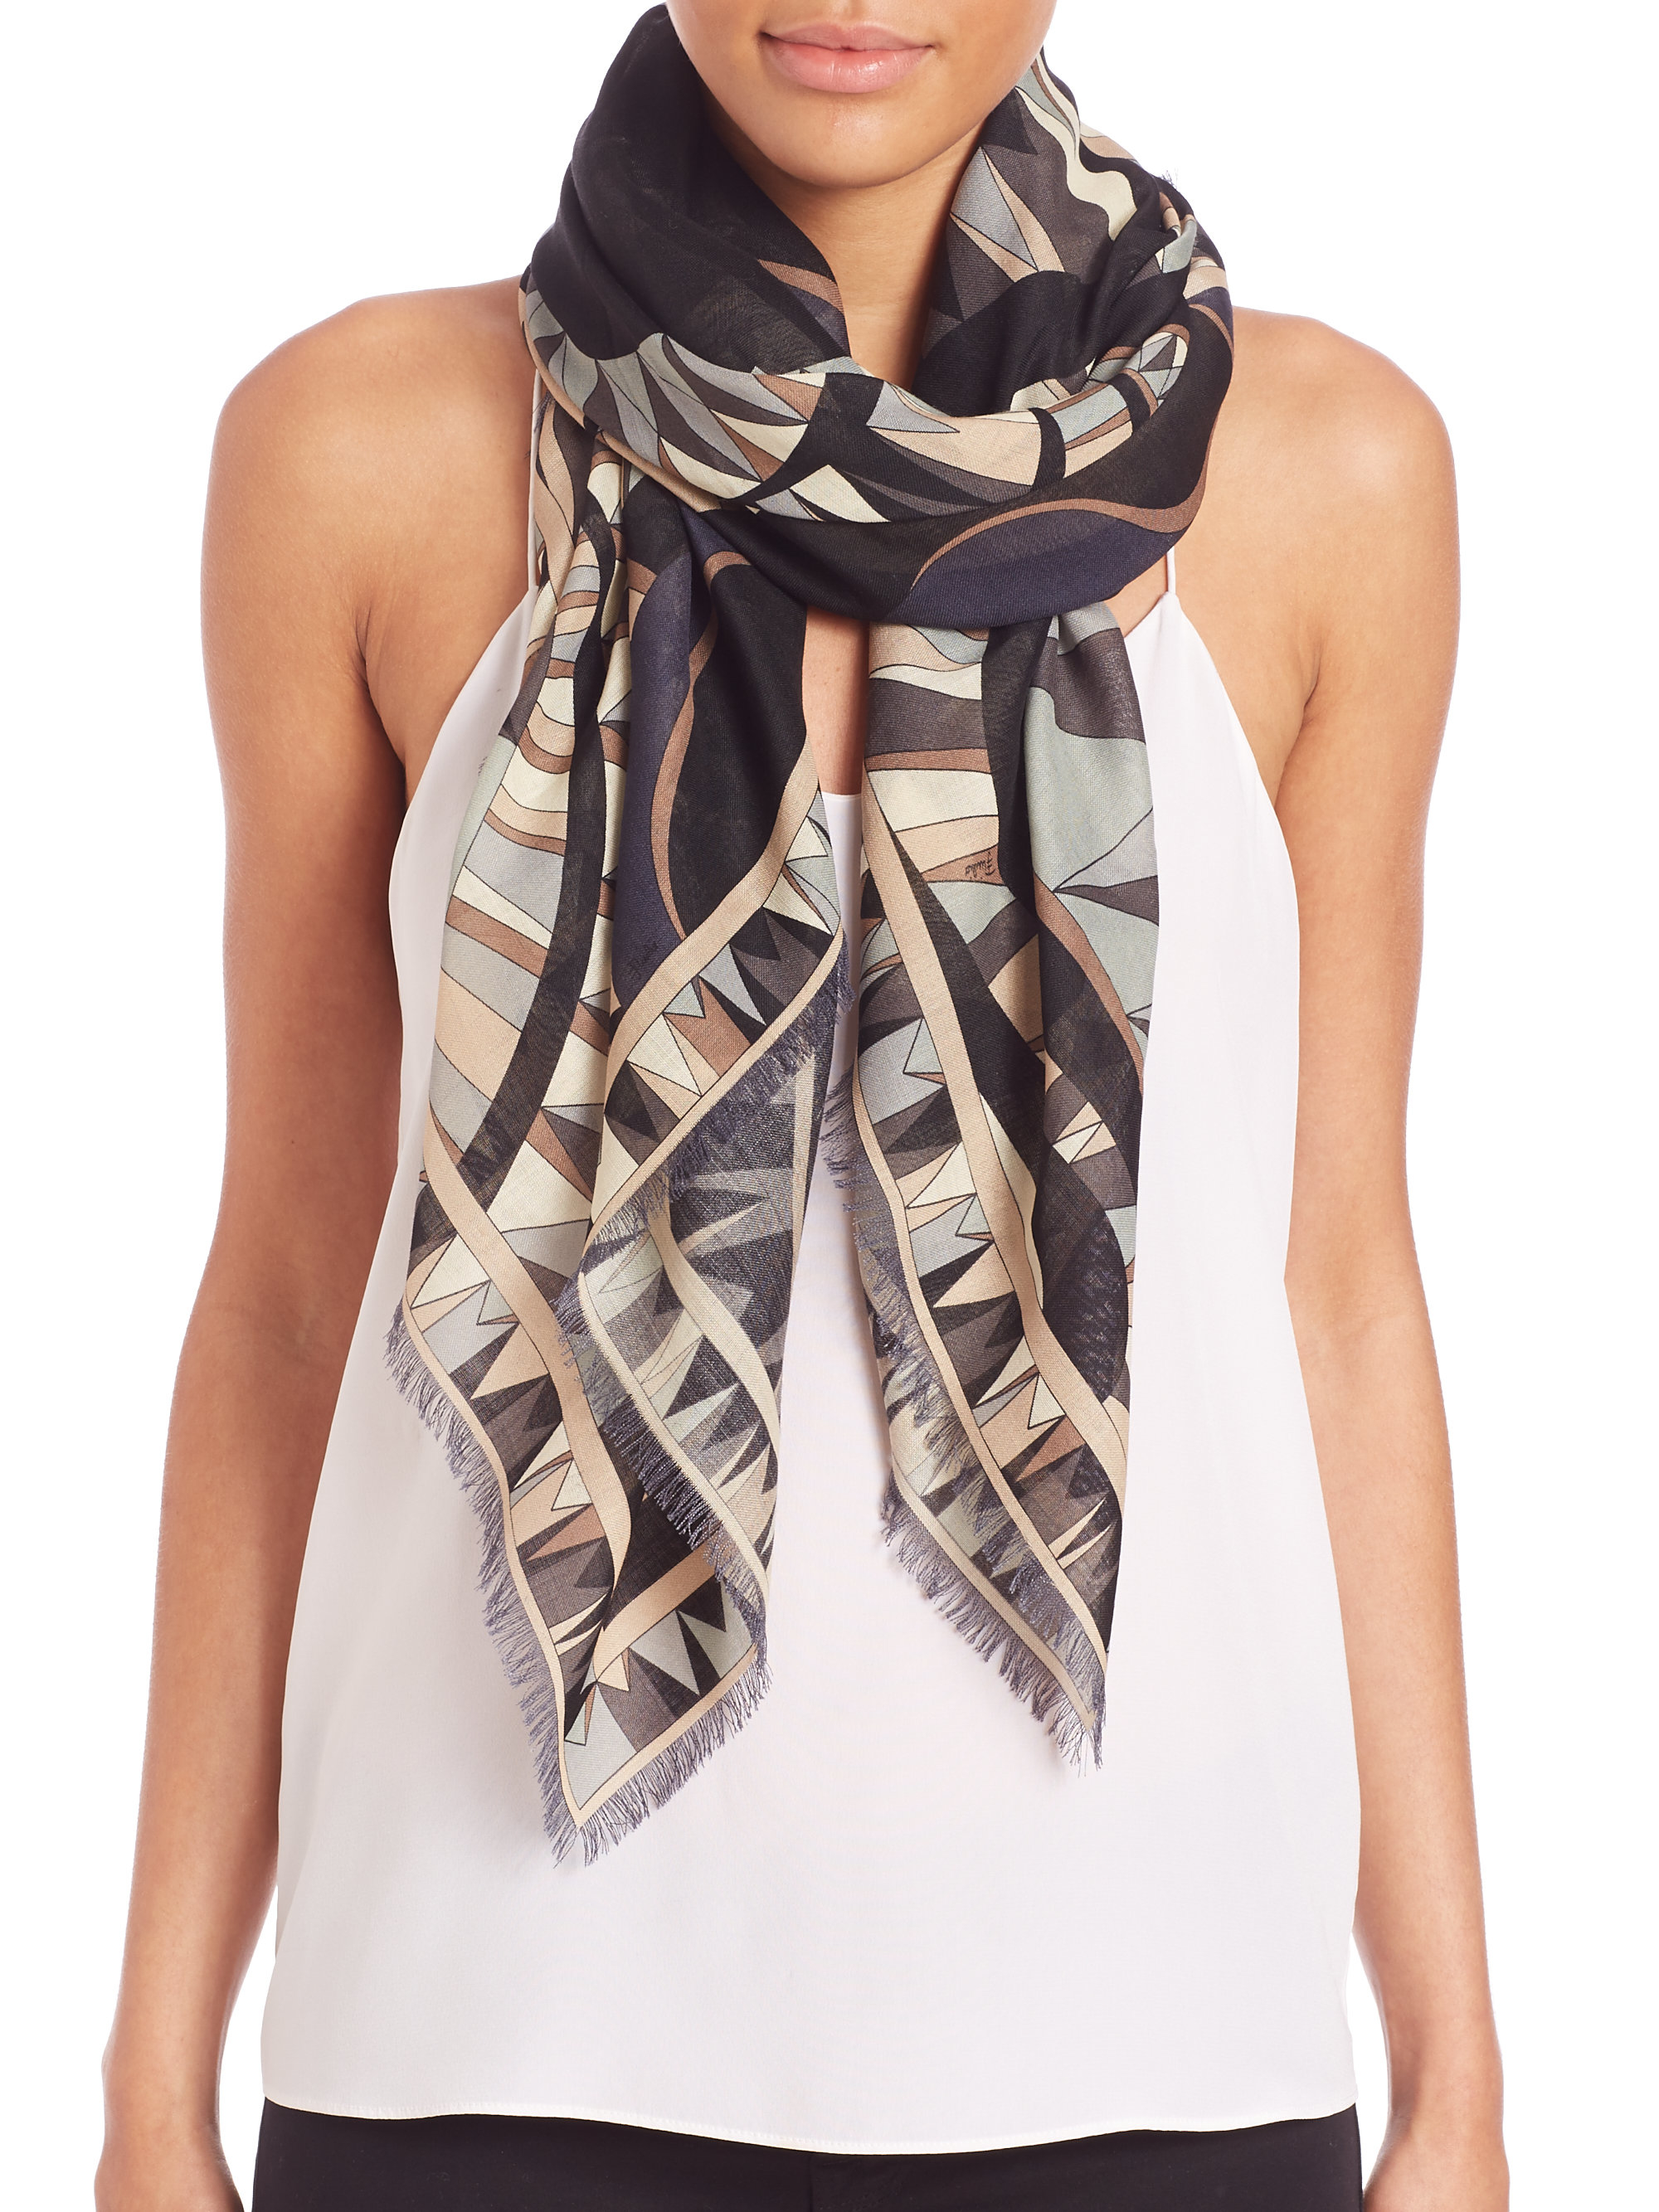 Emilio Pucci printed cashmere scarf Discount Perfect In China Sale Online Buy Cheap How Much Footlocker Sale Online ByOJ2035